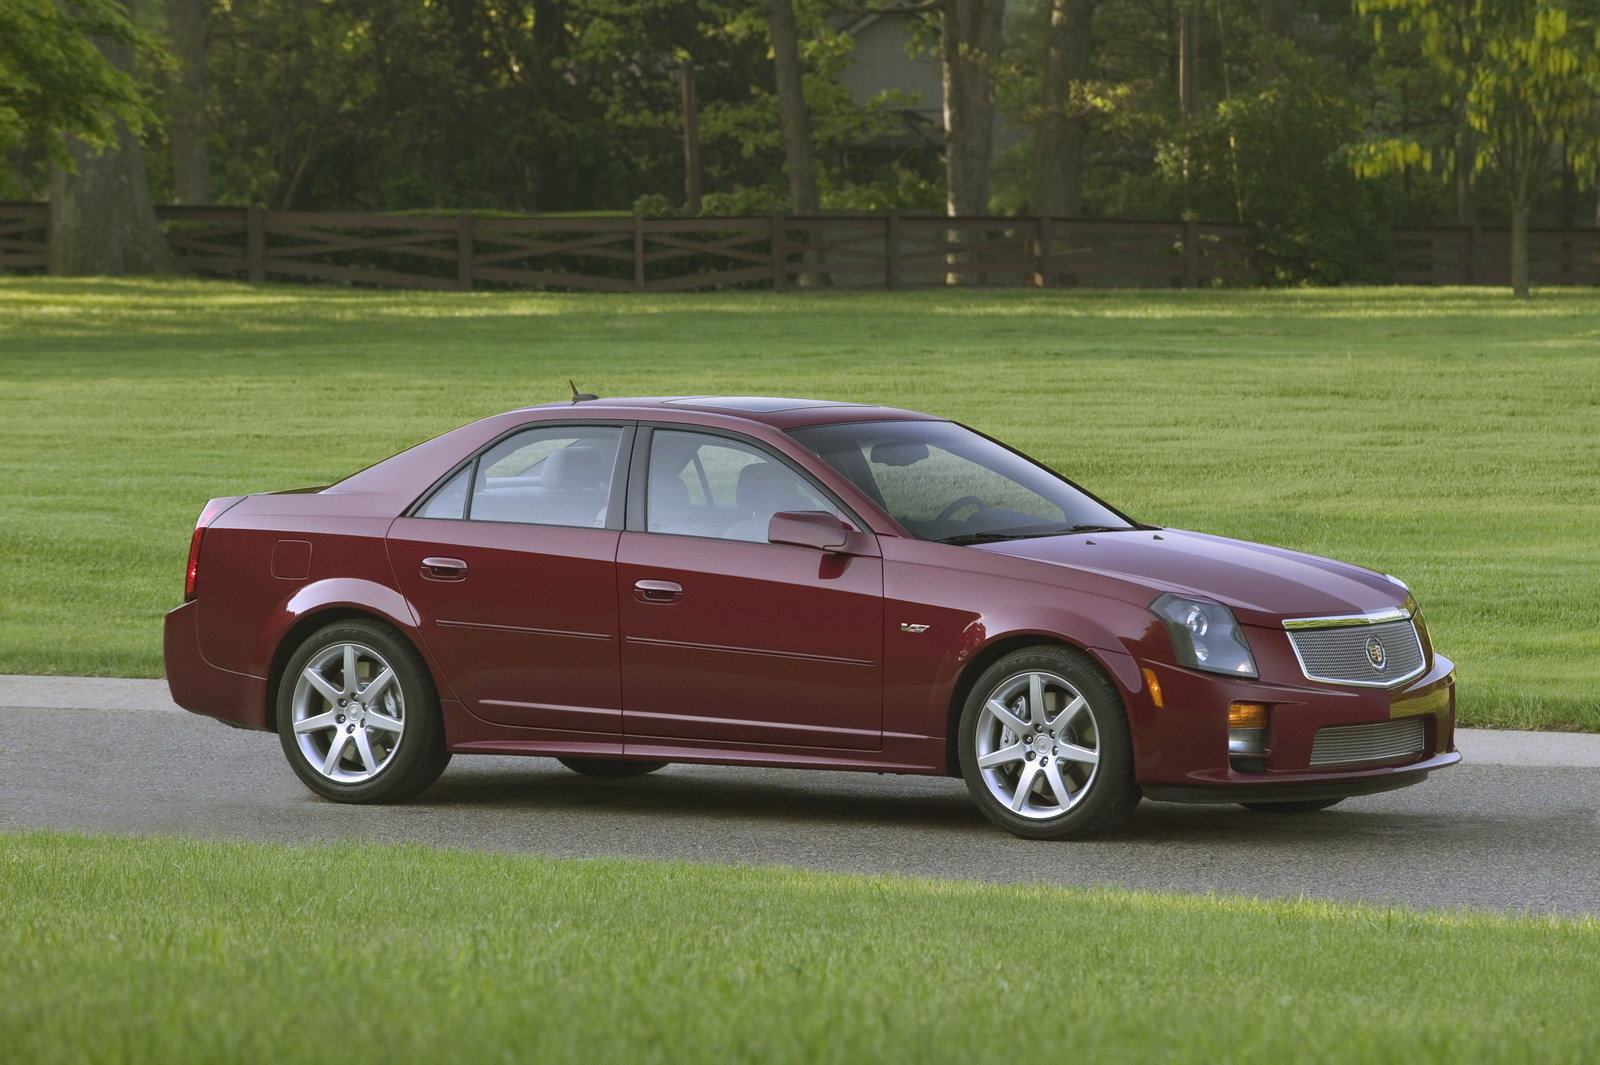 2006 cadillac cts v picture 64432 car review top speed. Black Bedroom Furniture Sets. Home Design Ideas